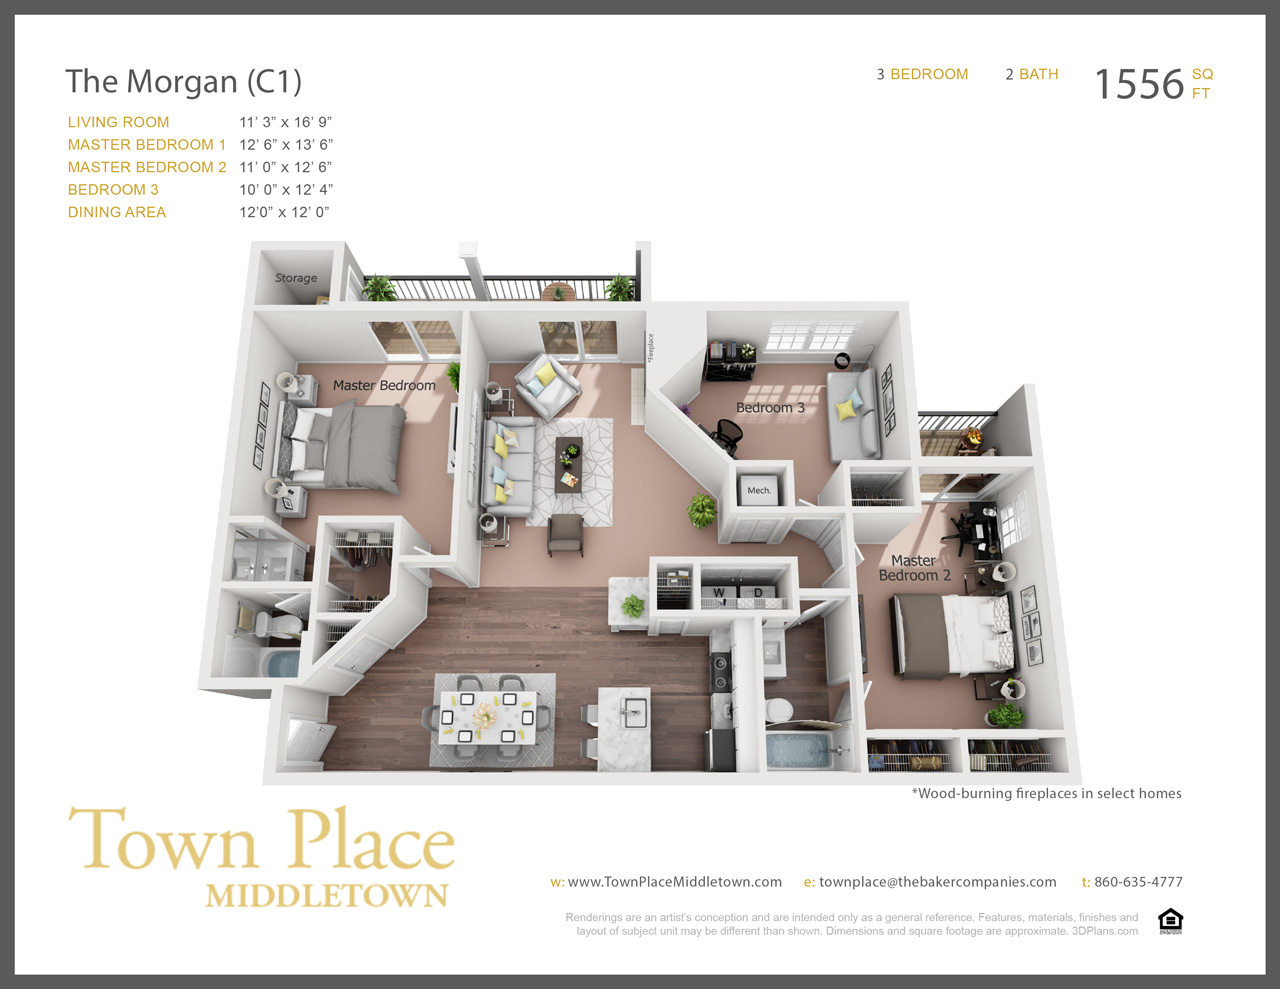 Town-Place-Middletown_Renovated_The-Morgan.jpg